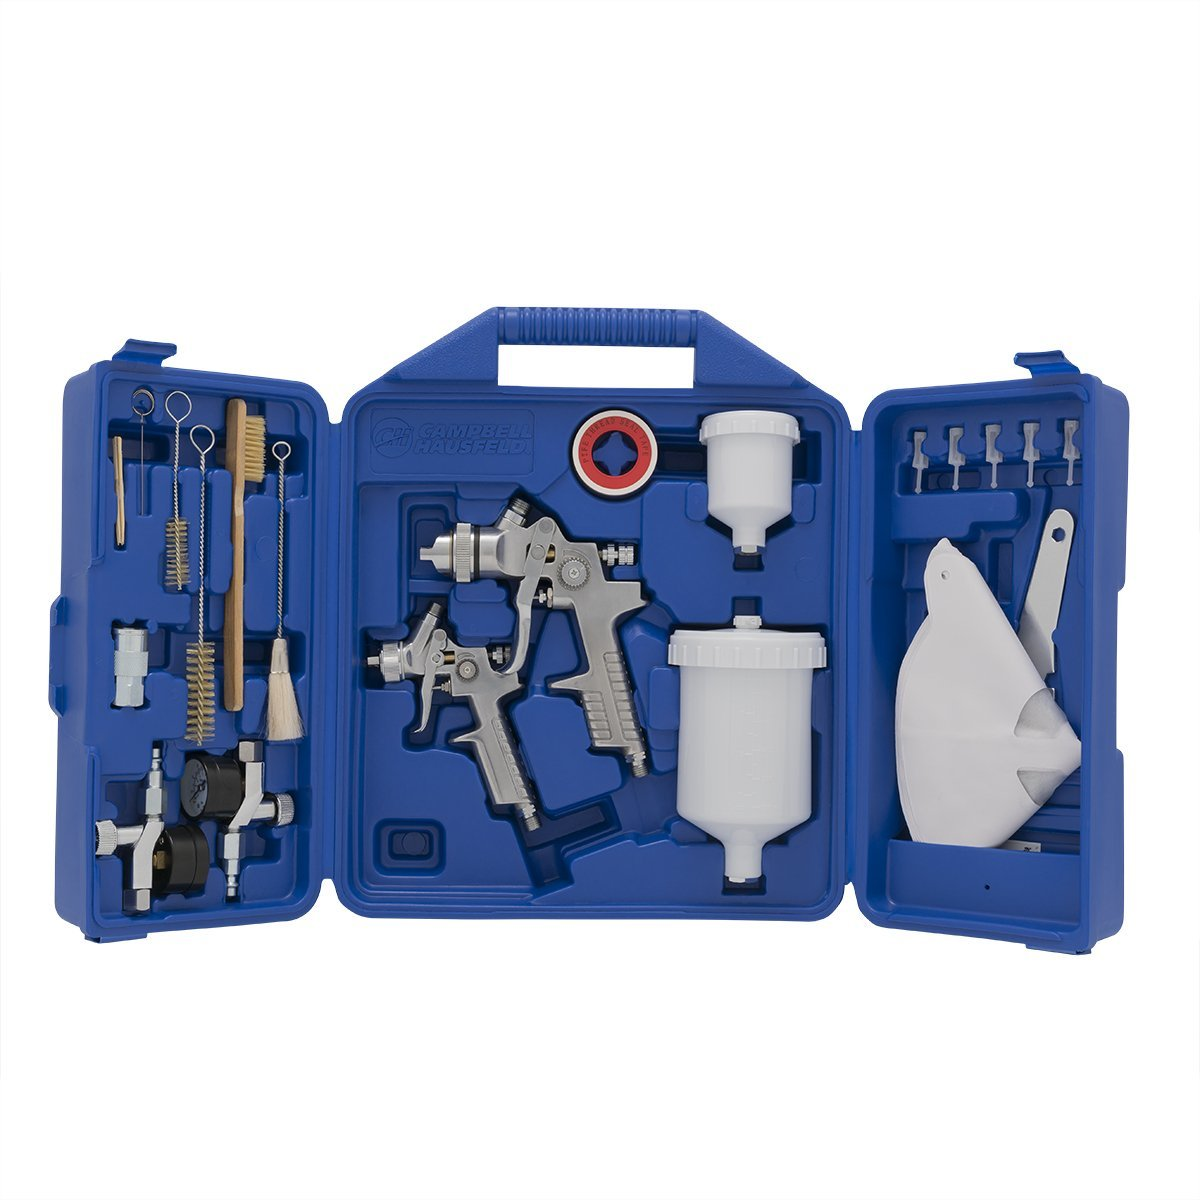 Campbell Hausfeld Gravity-Feed Spray Gun Kit